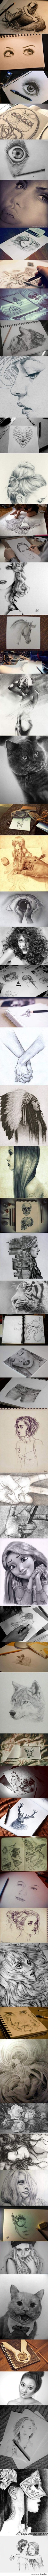 Amazing drawings!